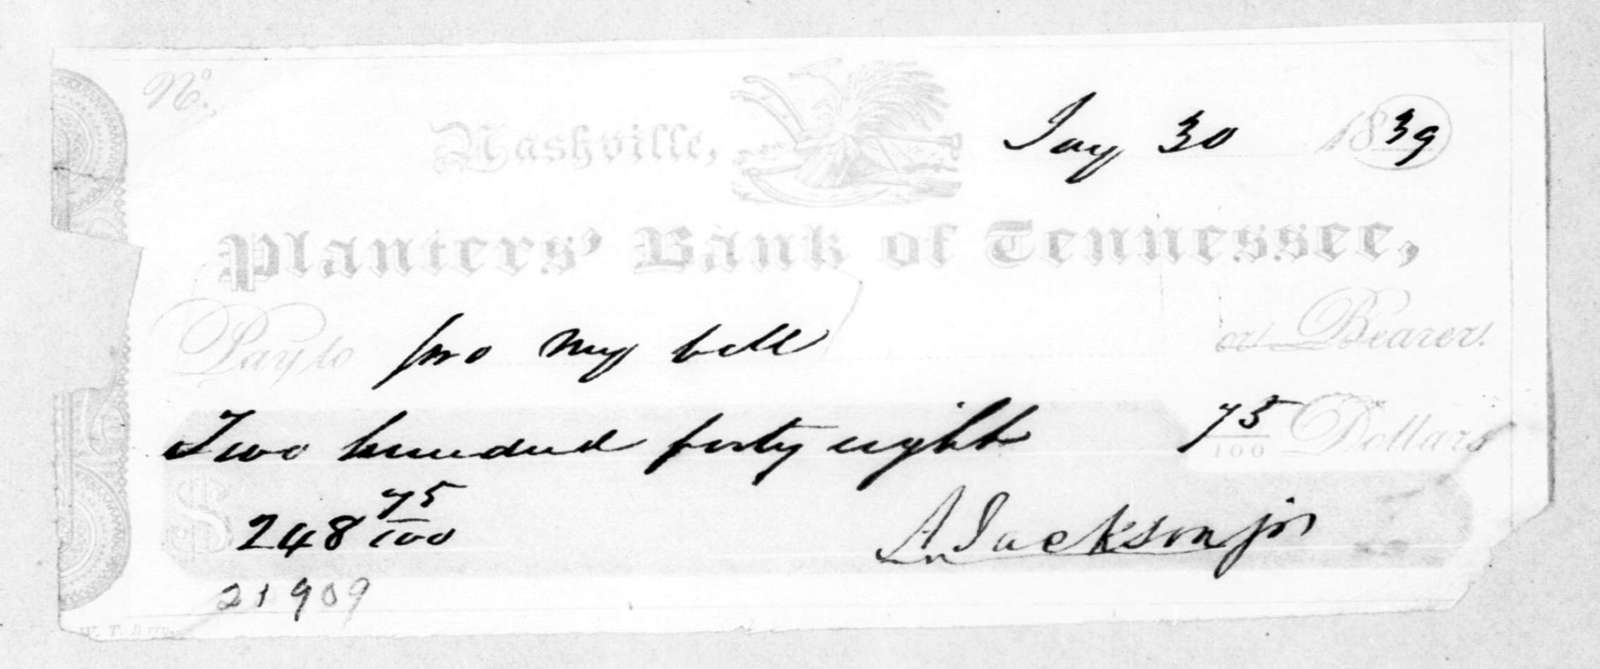 Andrew Jackson, Jr. to Planters Bank of Tennessee, January 30, 1839